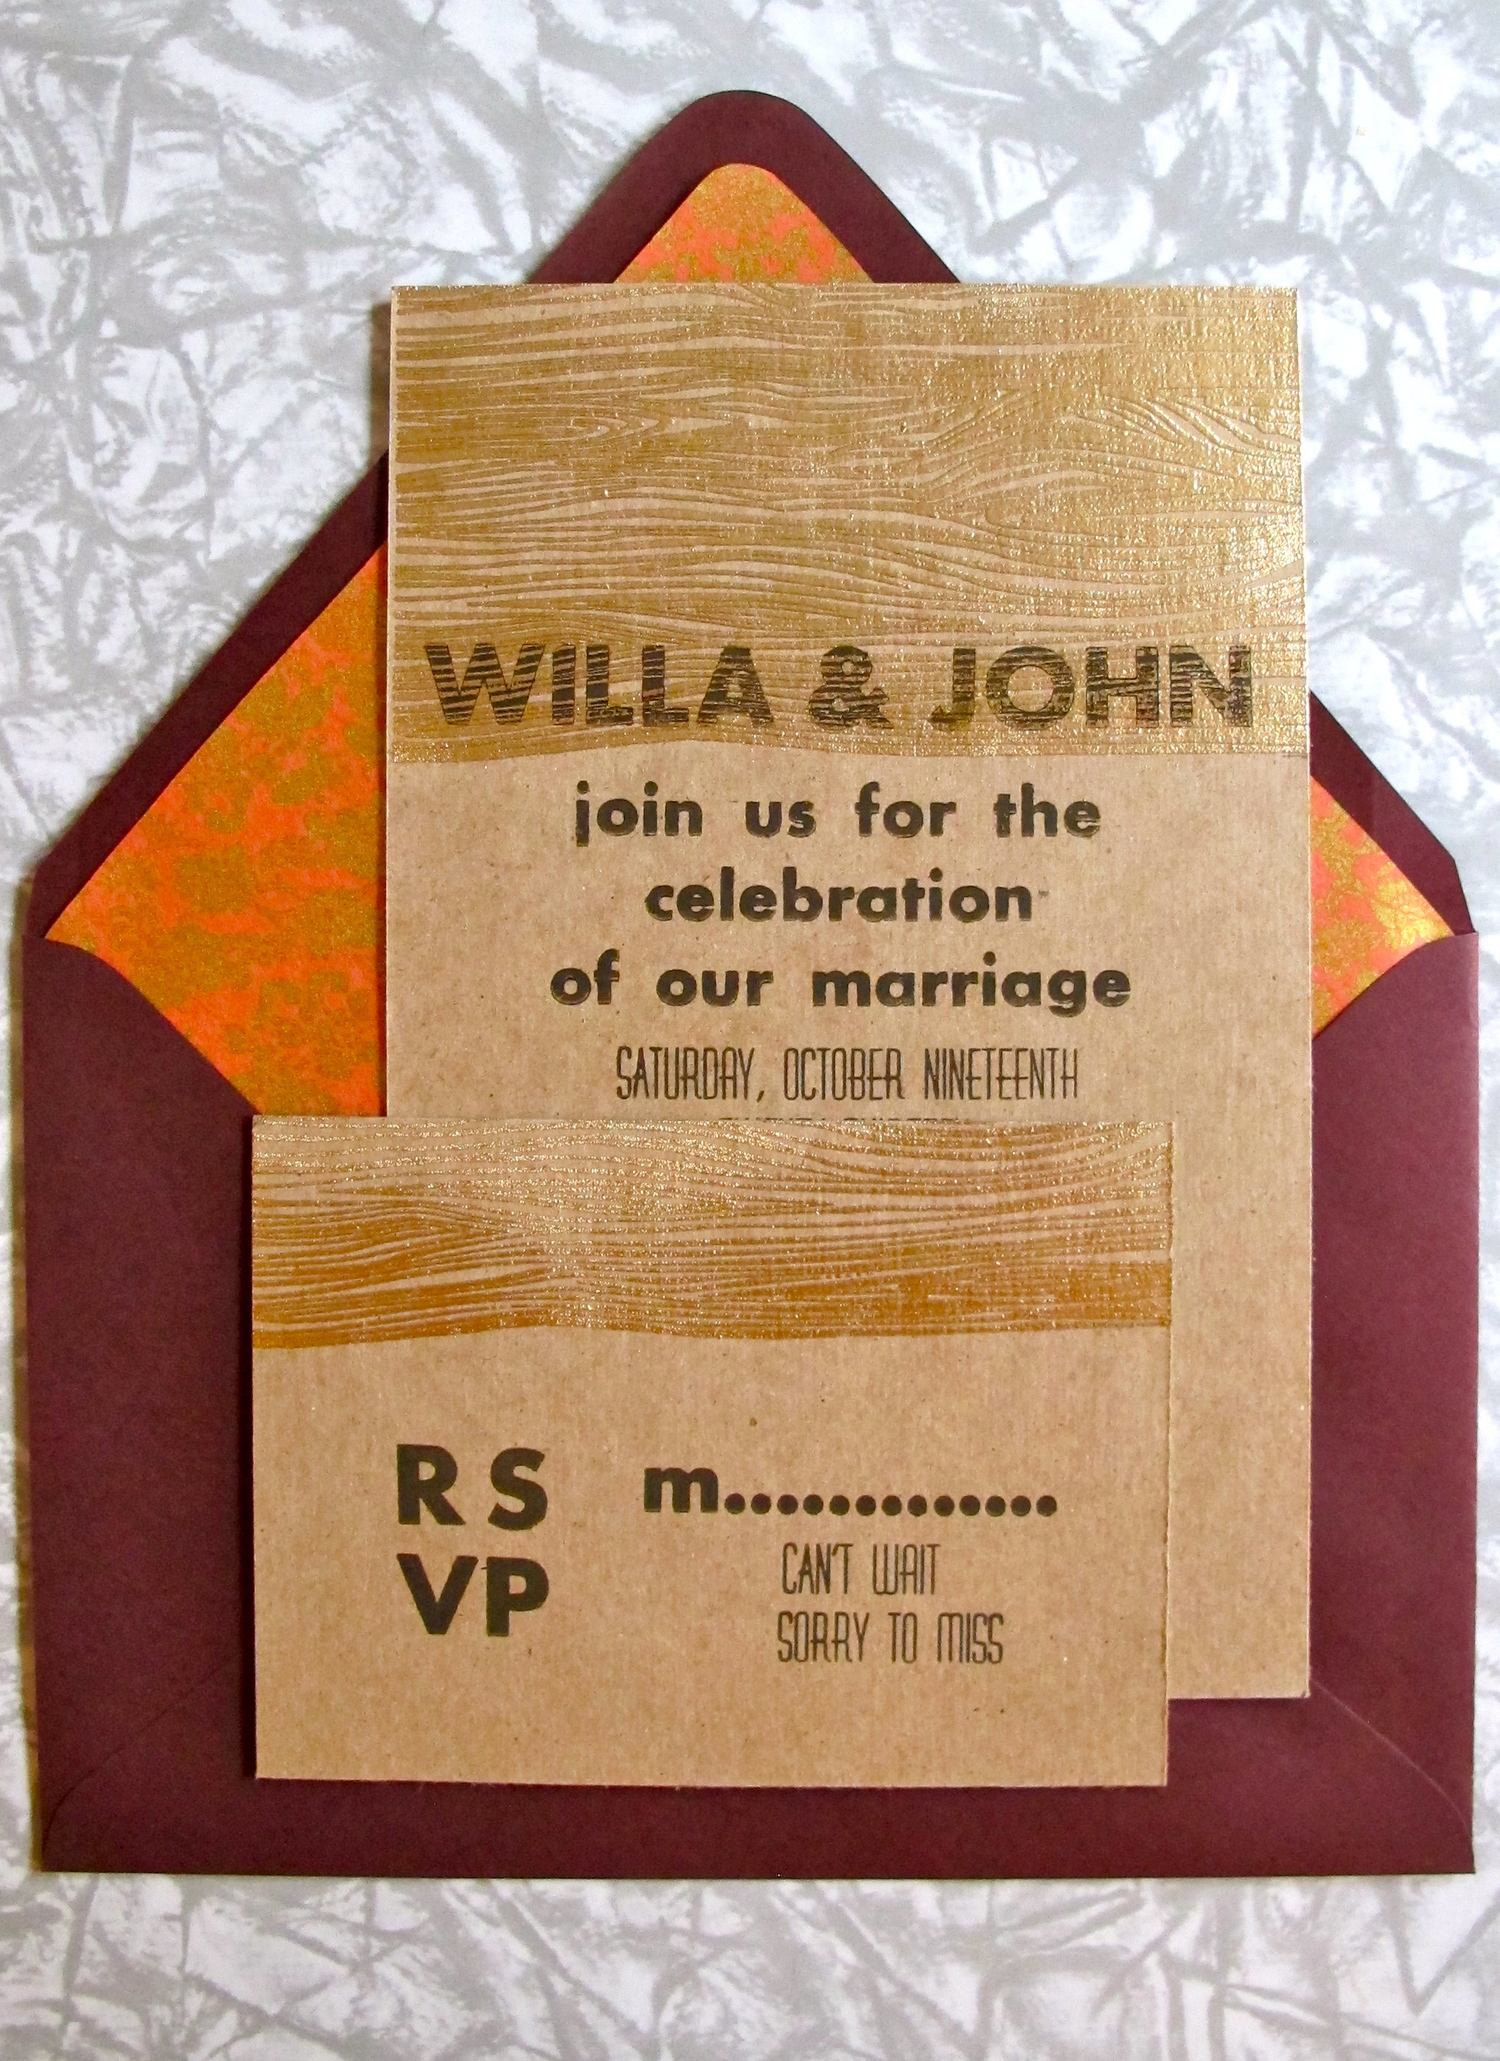 Letterpress invitation and rsvp card with hand embossed woodgrain.